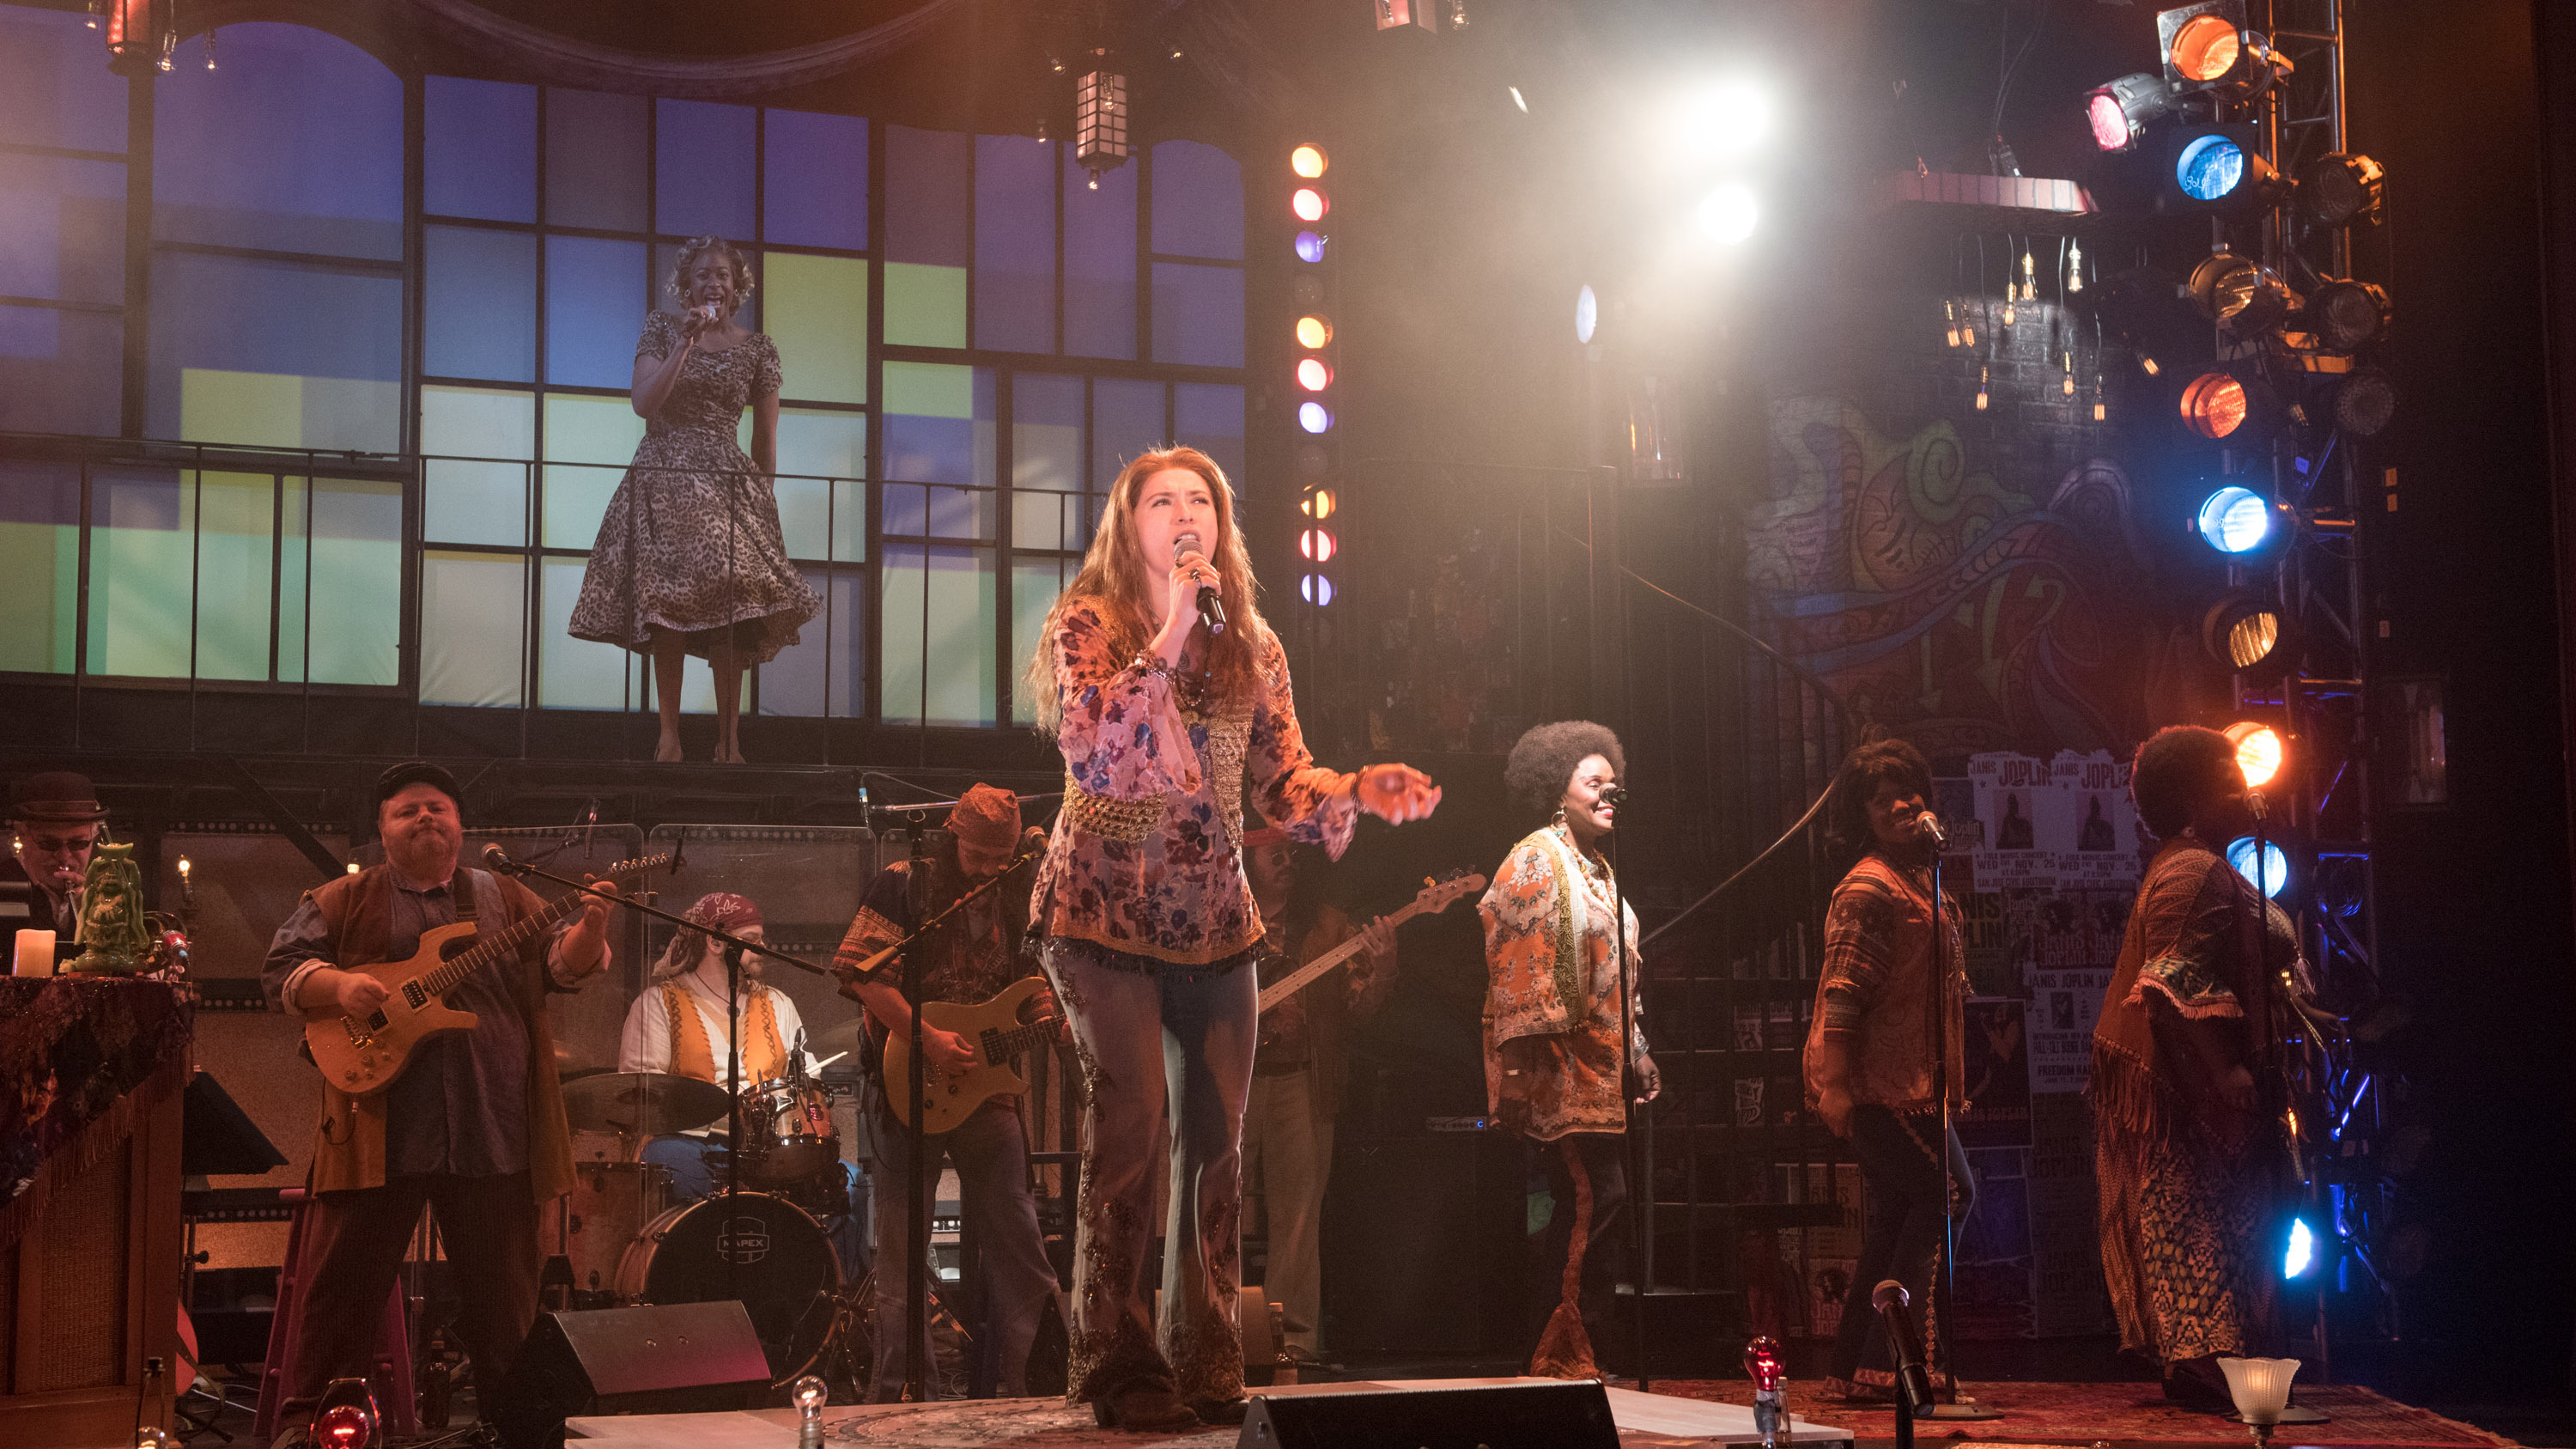 'She found her own voice': Janis Joplin lives again in theatrical production 'A Night with Janis'